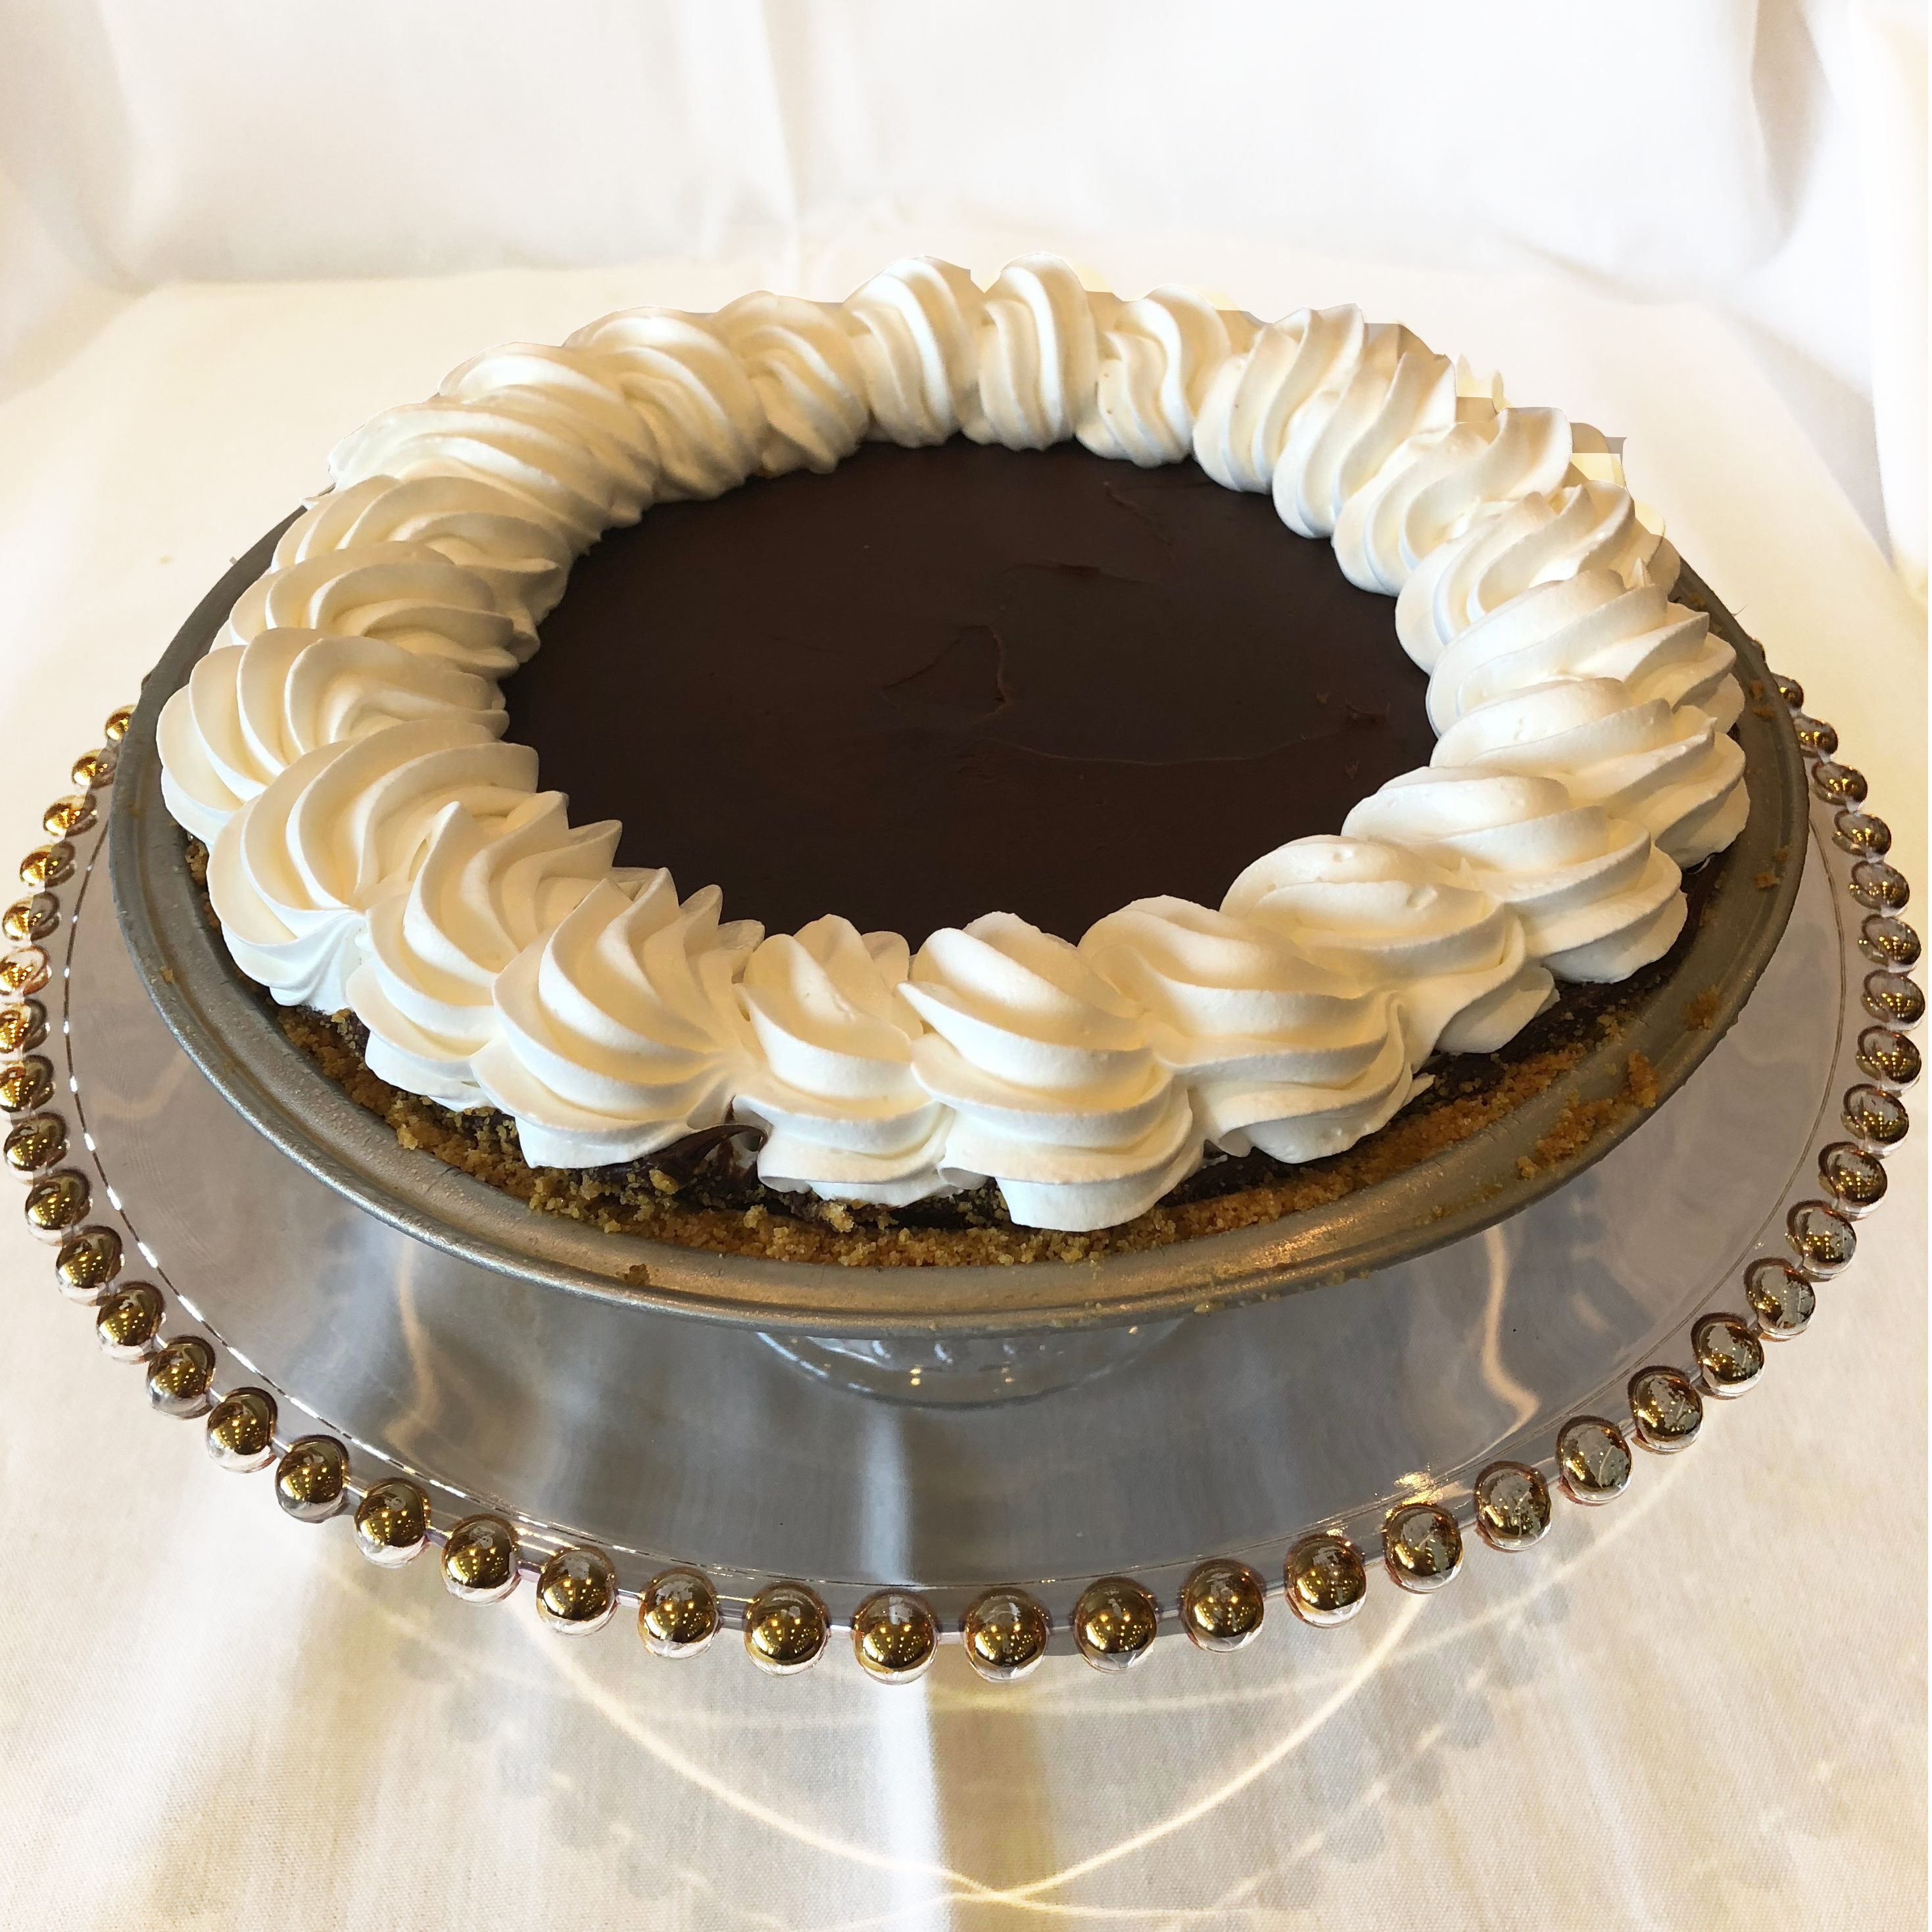 Whole Peanut Butter Pie Image